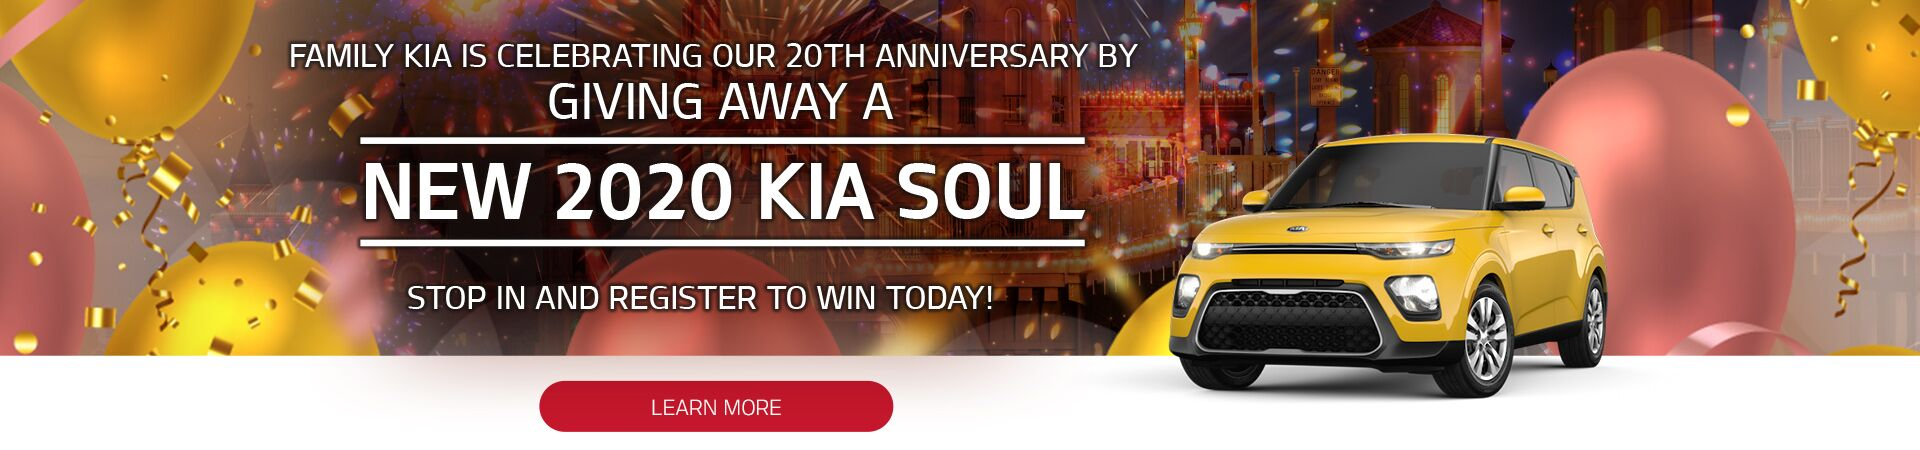 Family Kia 20th Anniversary 2020 Kia Soul Giveaway